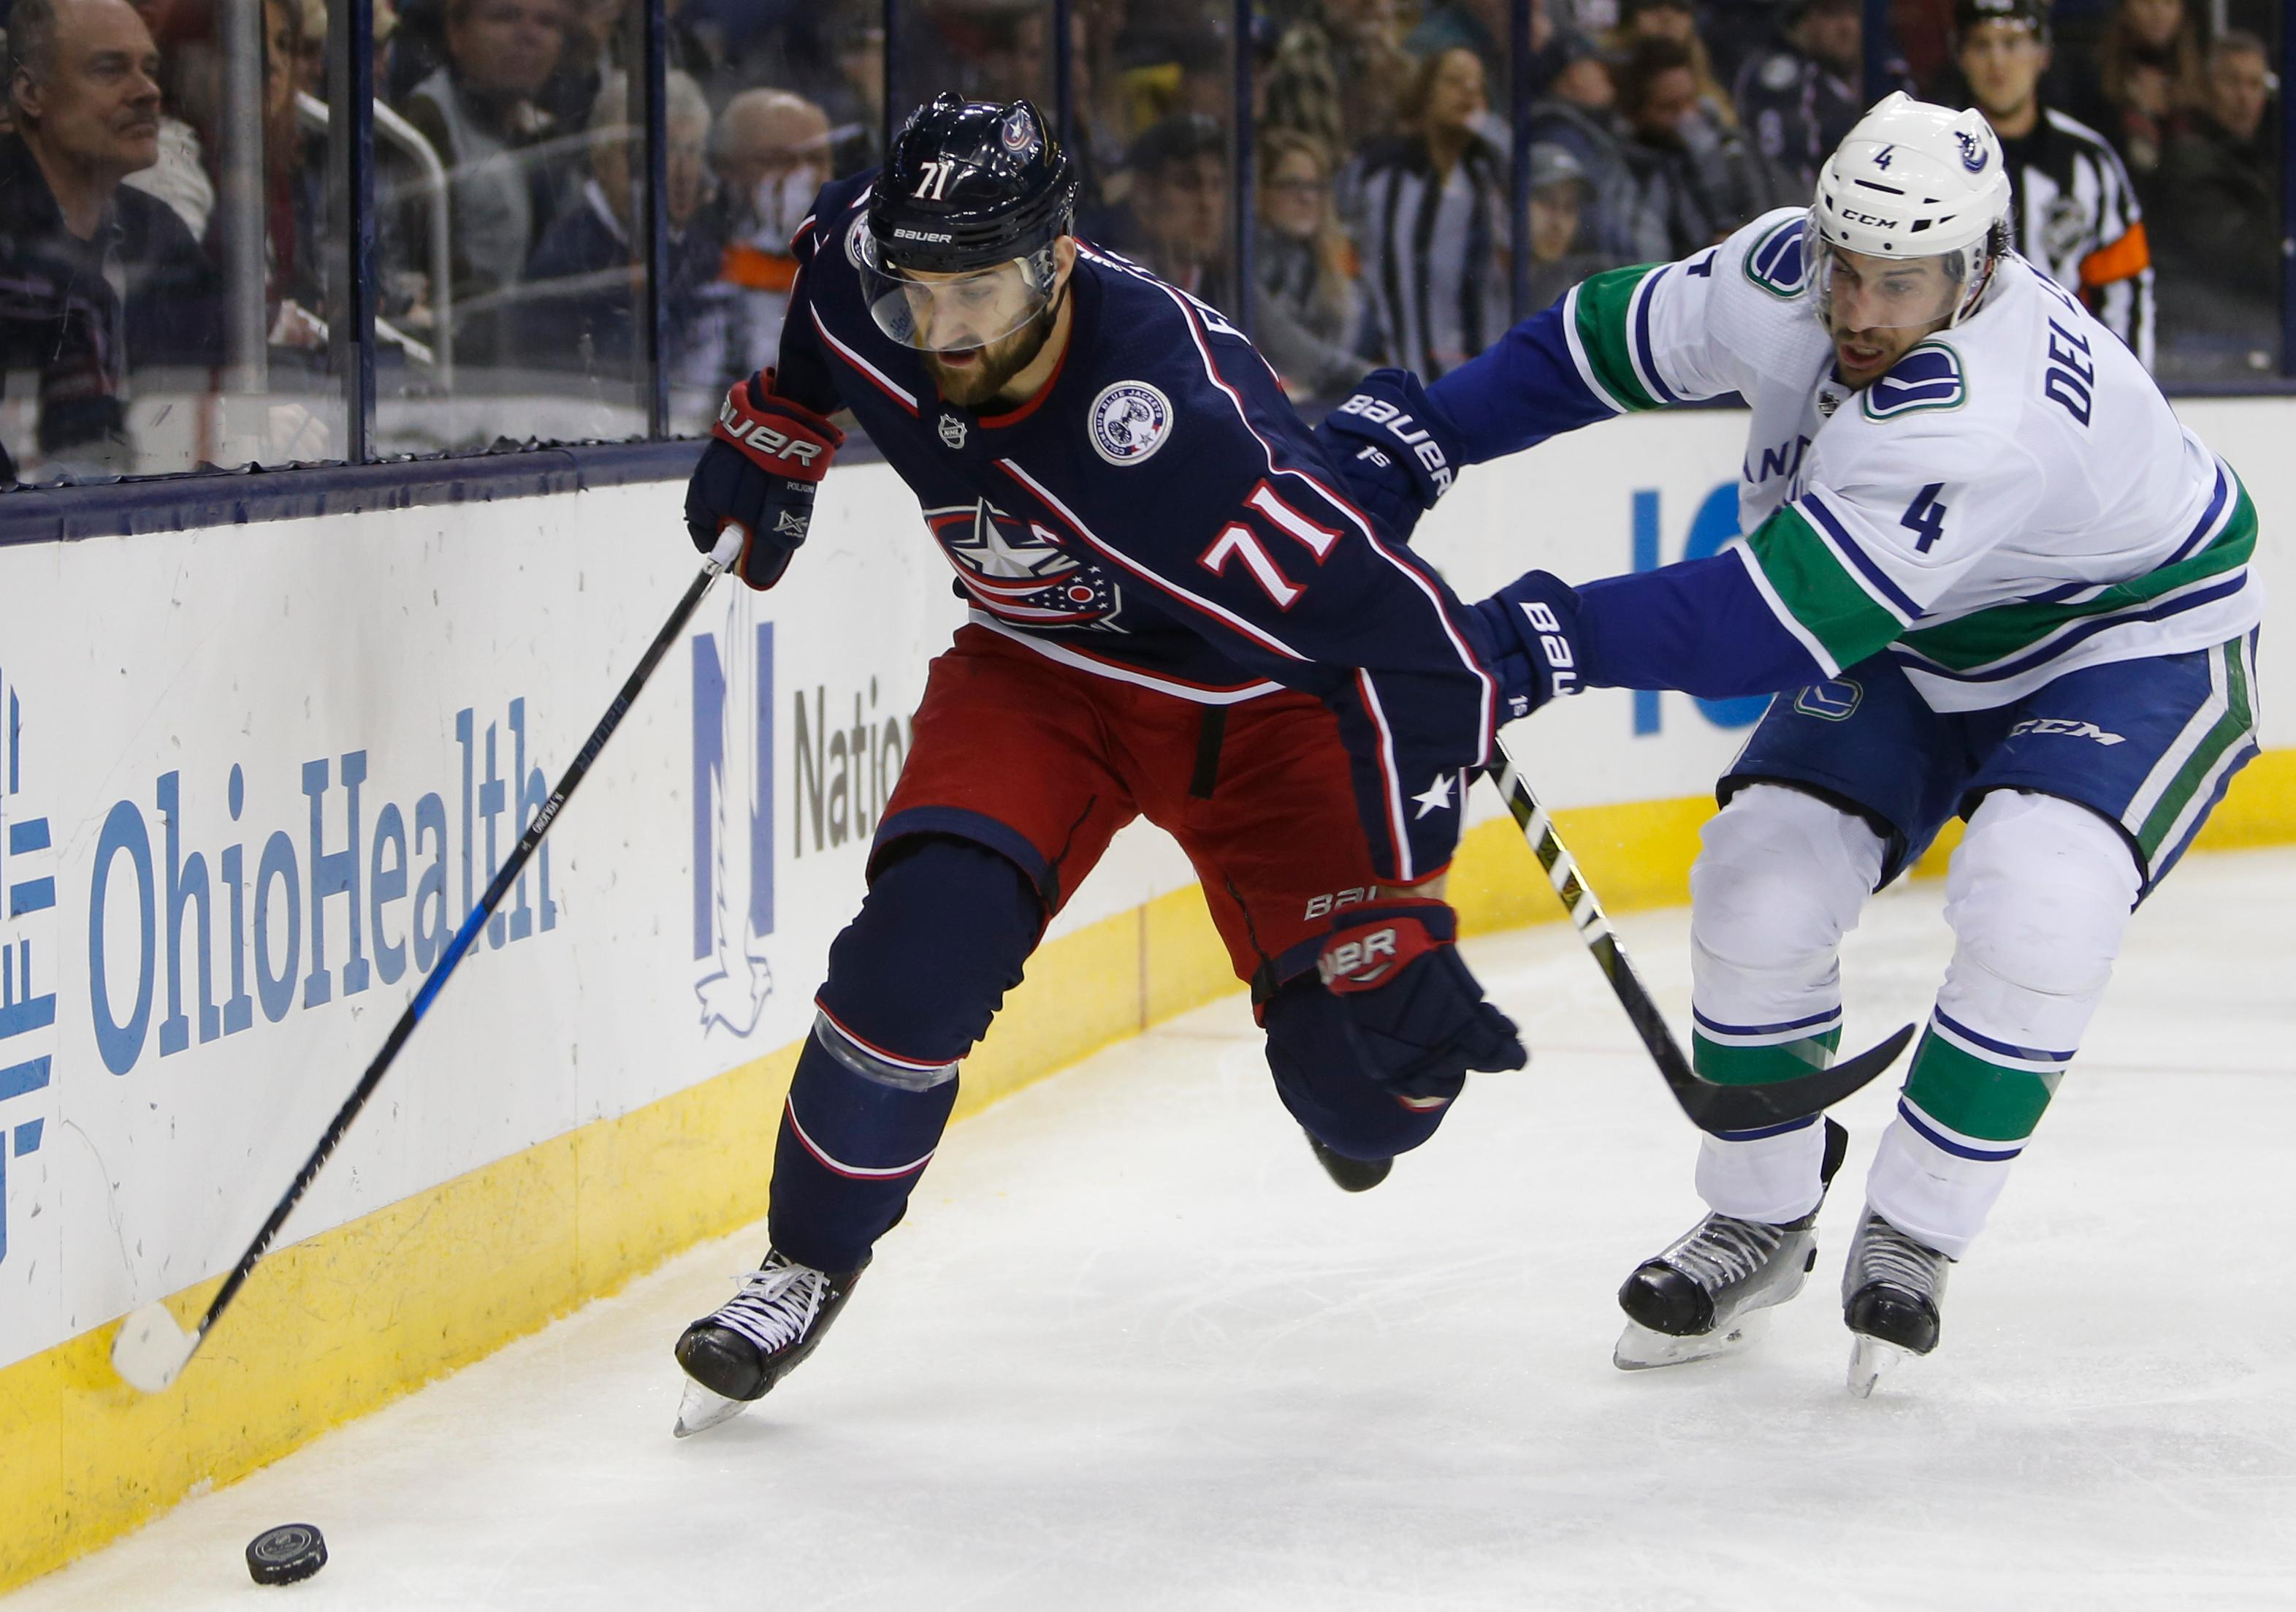 Columbus Blue Jackets' Nick Foligno, left, controls the puck as Vancouver Canucks' Michael Del Zotto defends during the second period of an NHL hockey game Friday, Jan. 12, 2018, in Columbus, Ohio. (AP Photo/Jay LaPrete)